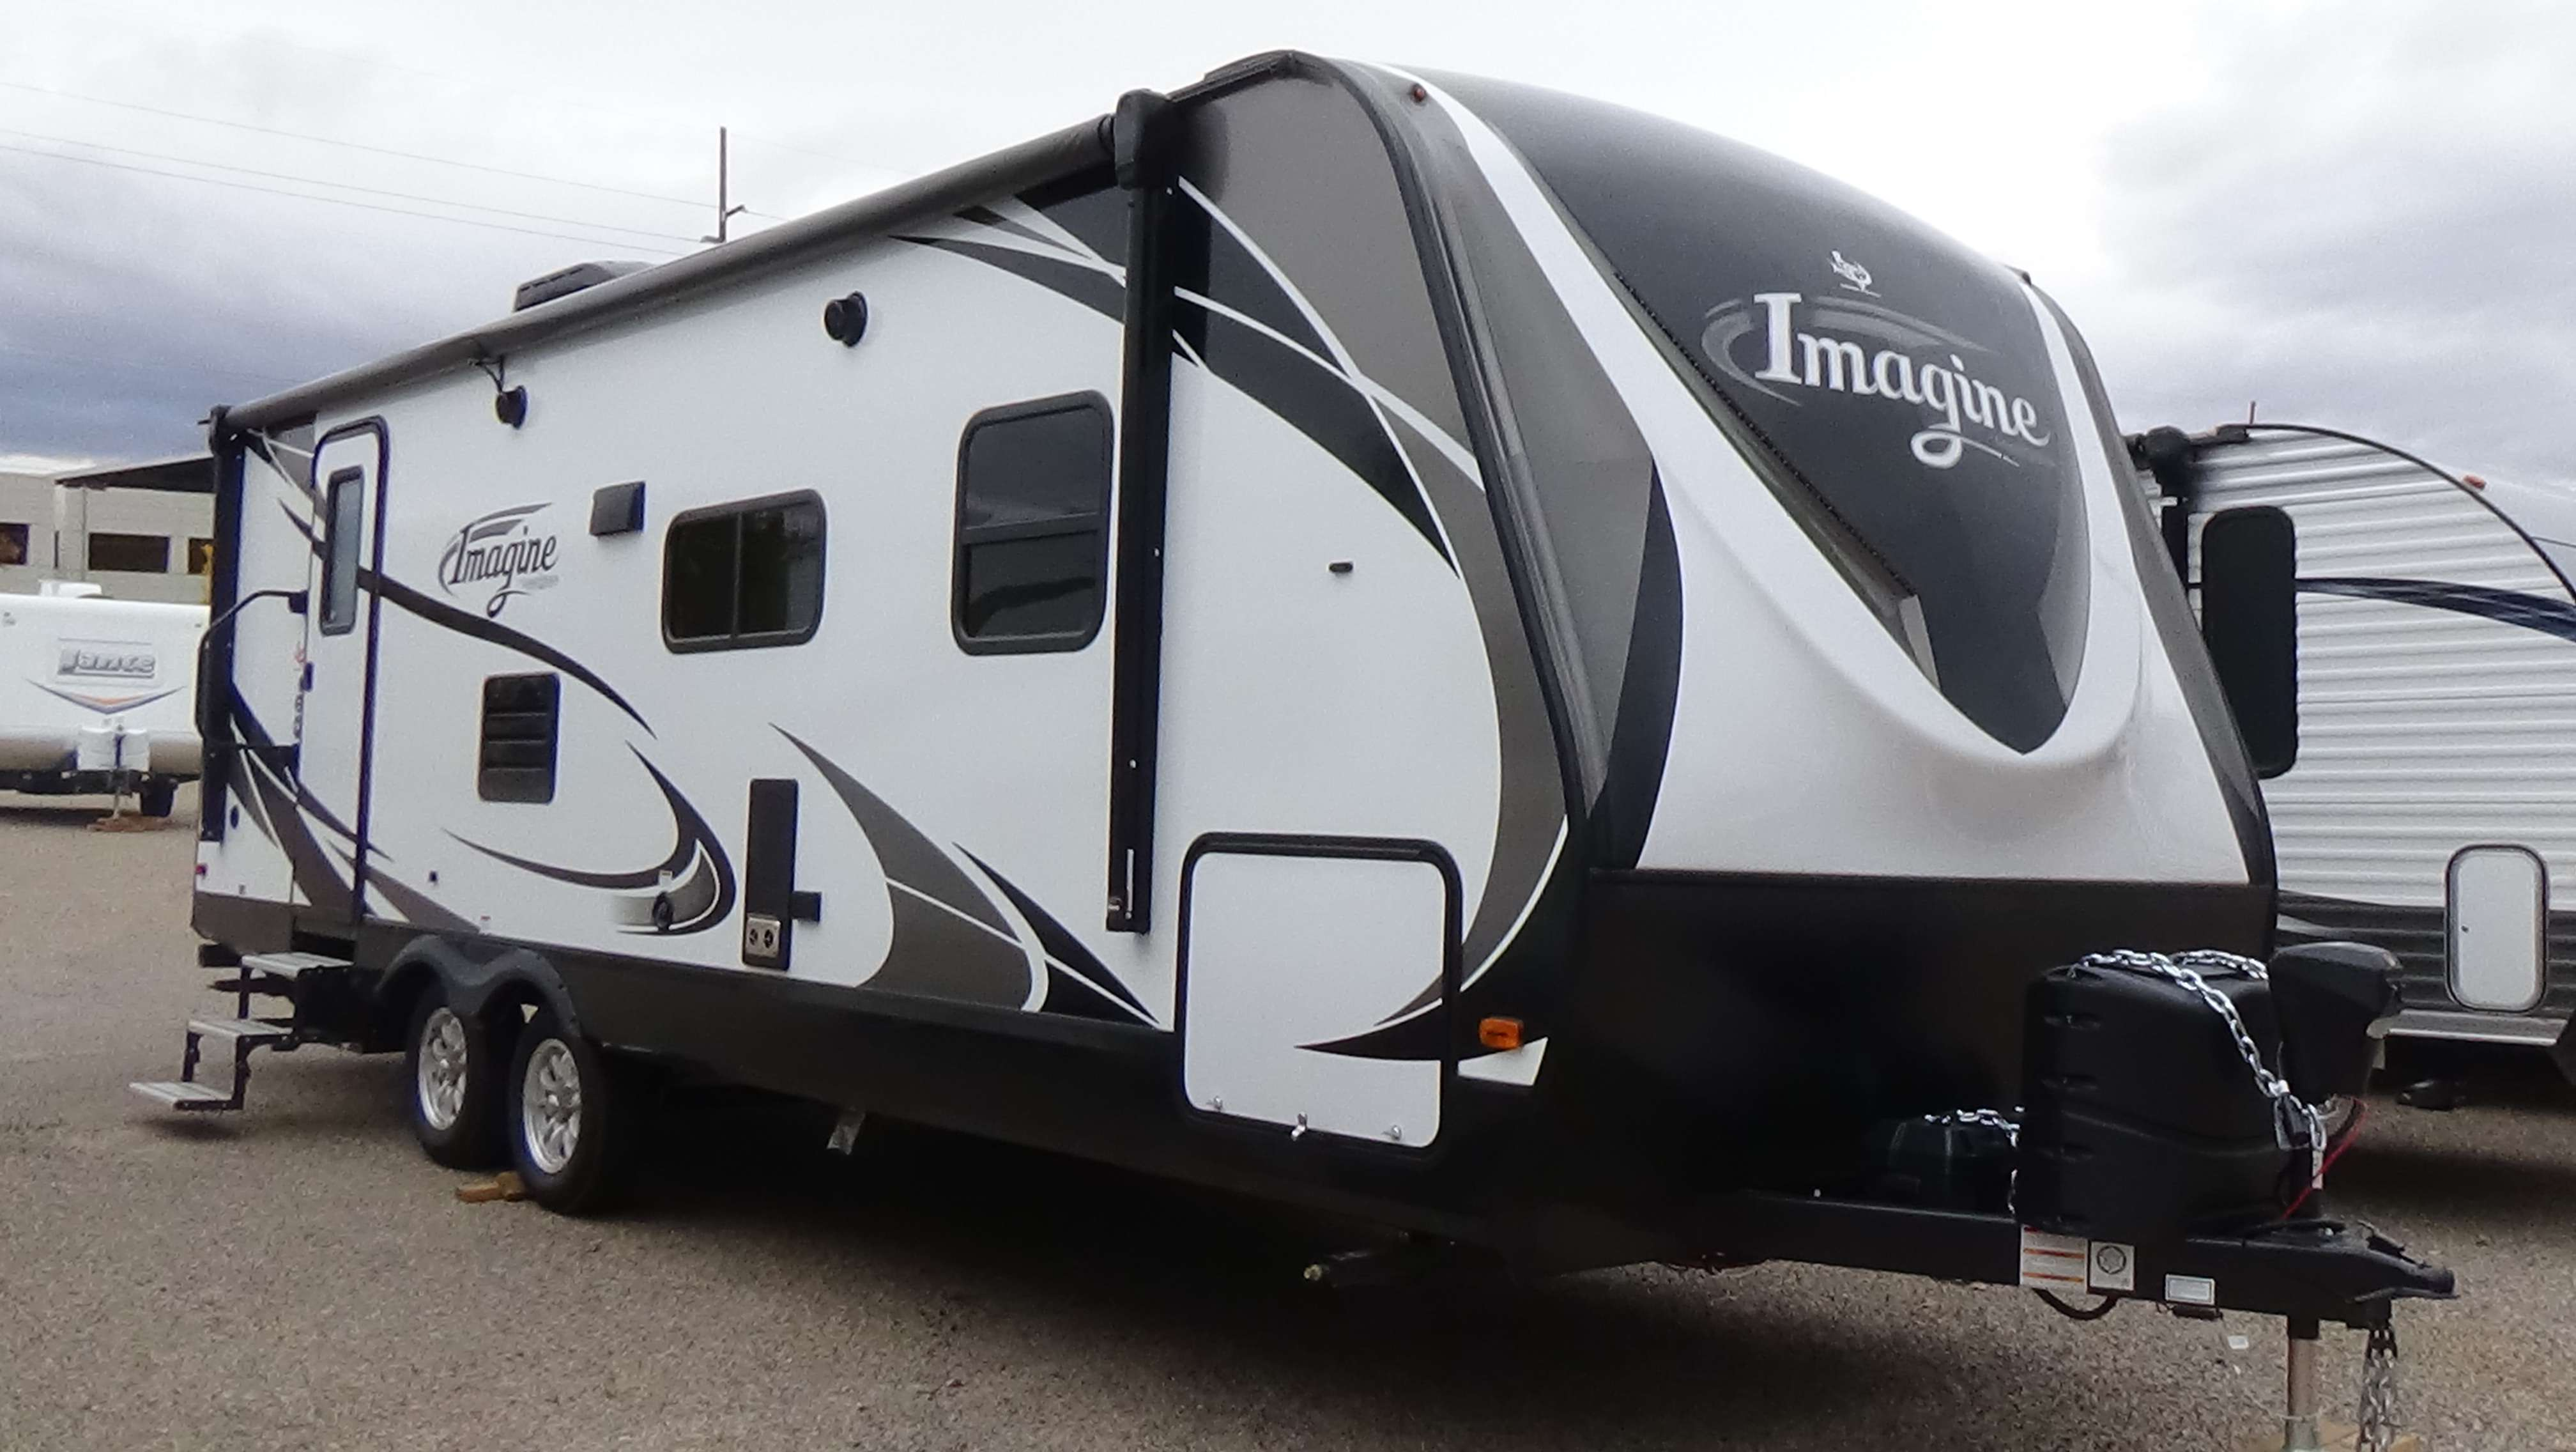 Travel Trailer - 1 Slide Out Imagine 2600RB